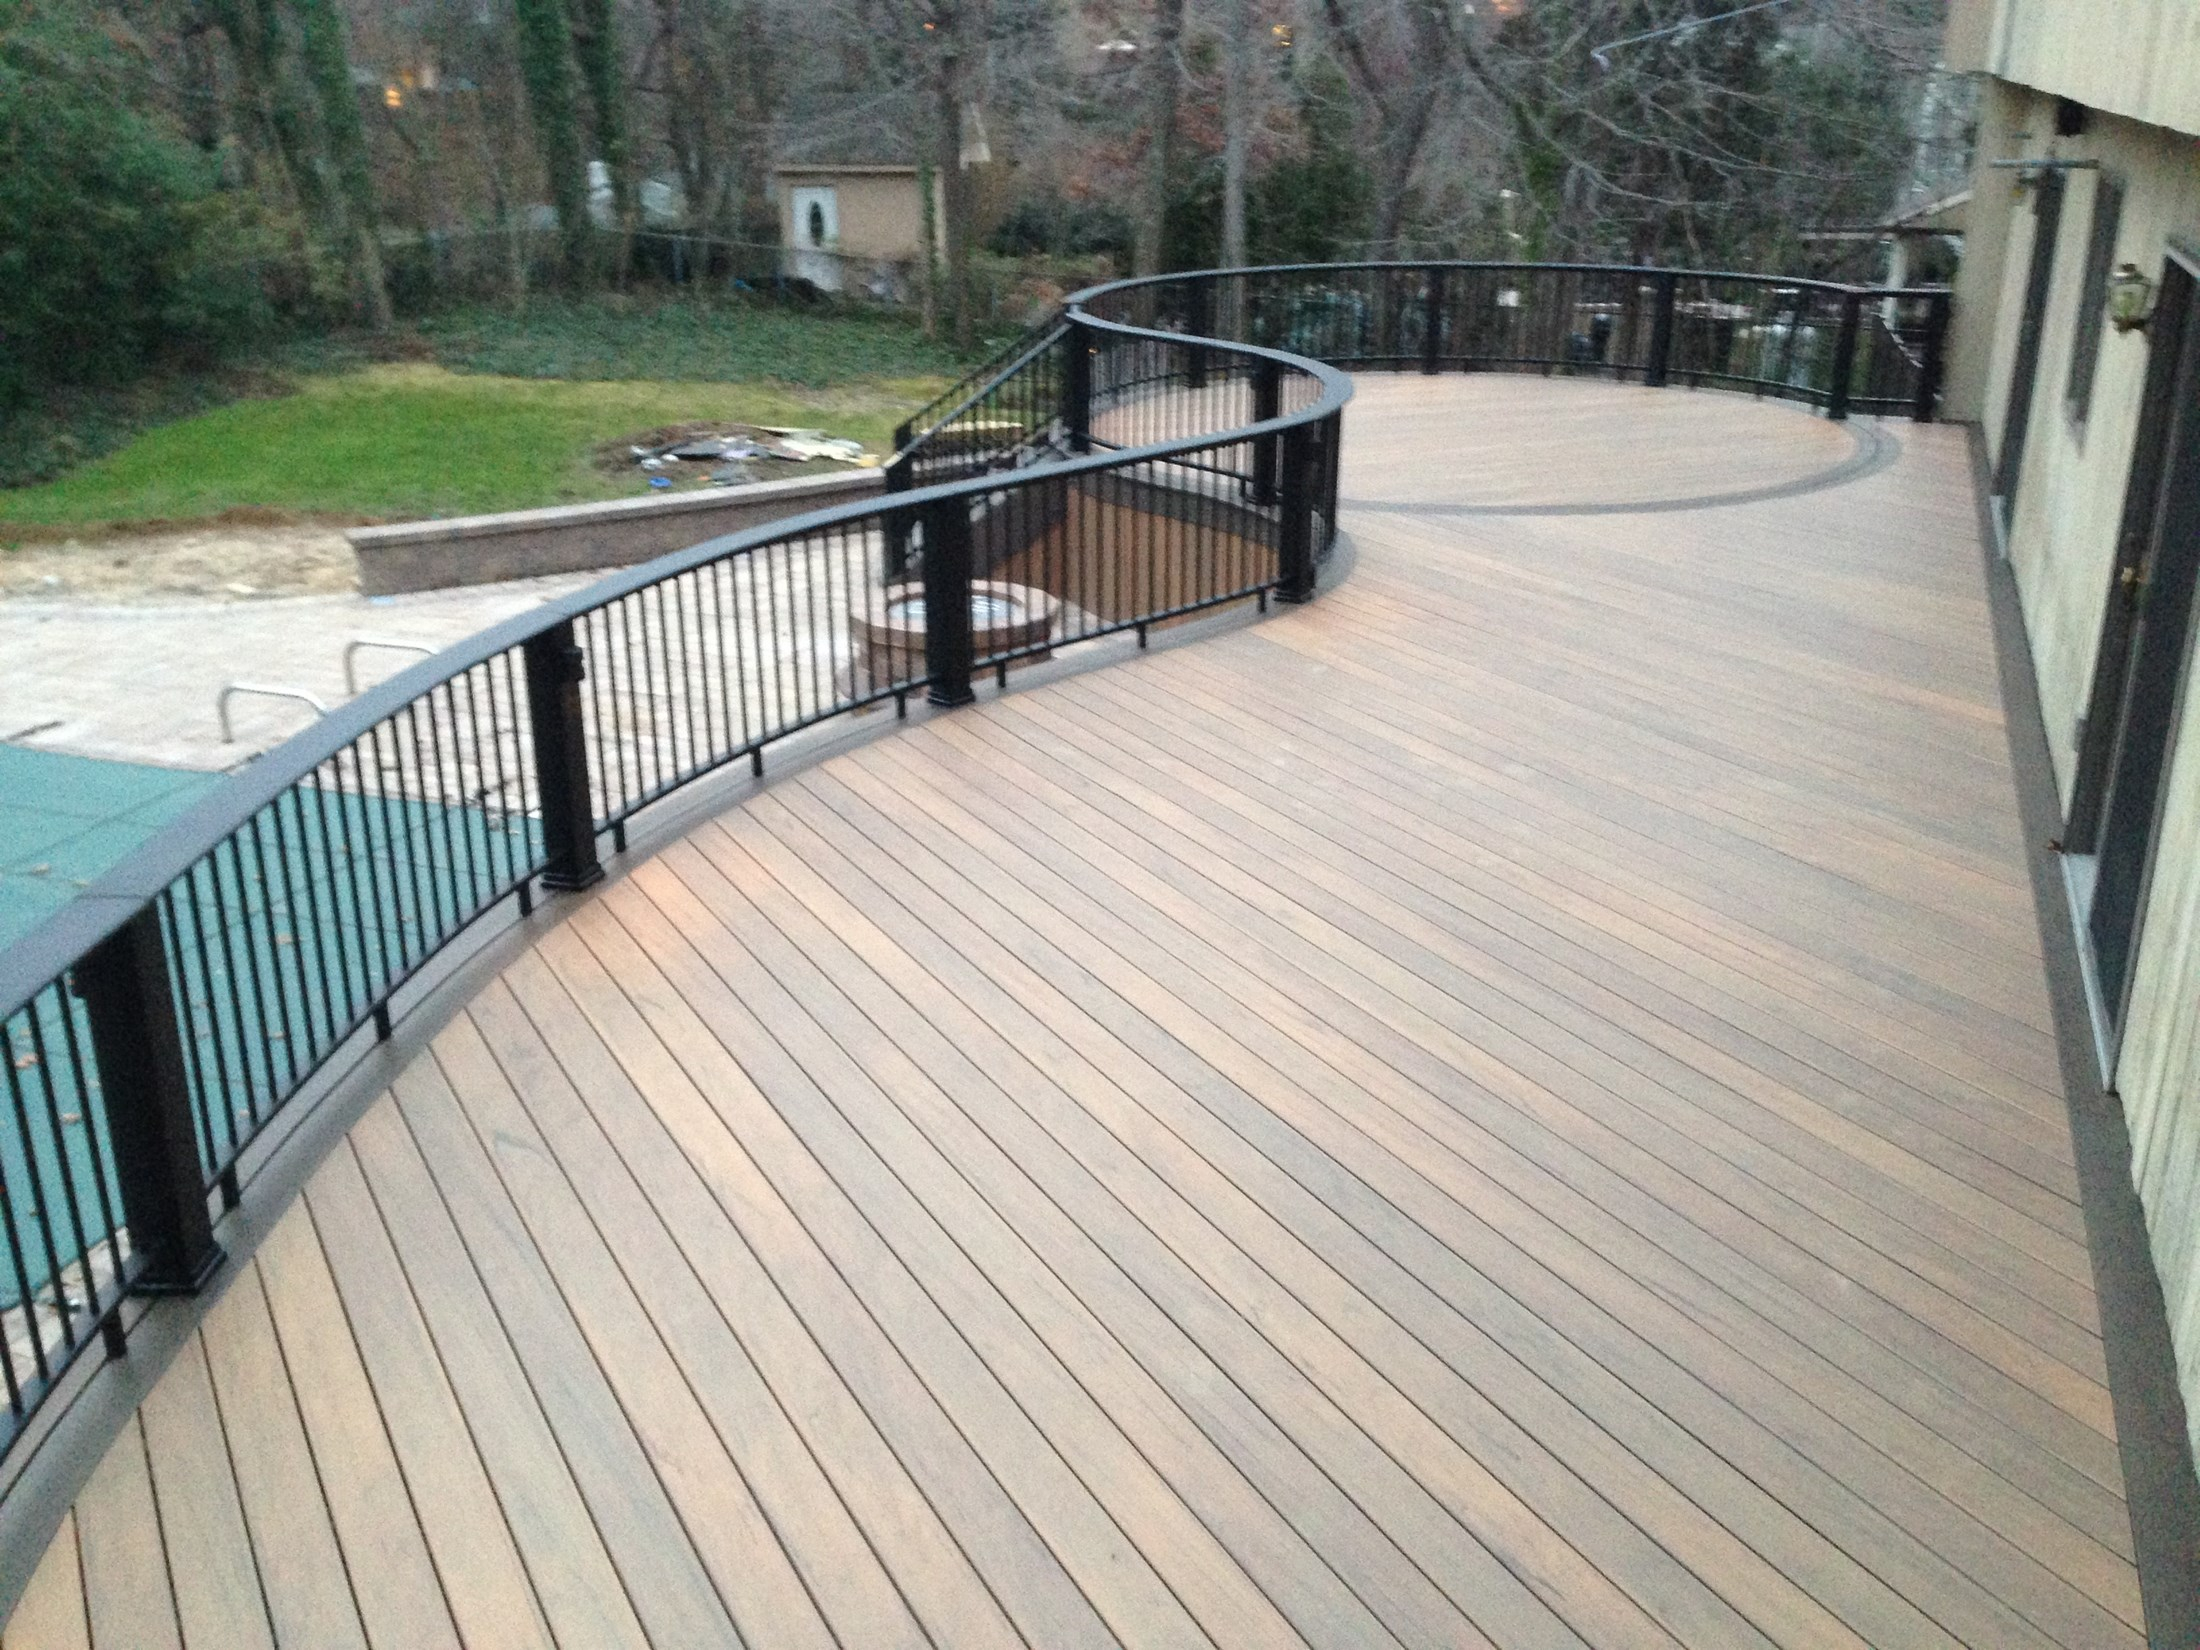 Decks Composite Decking Material Review with dimensions 2200 X 1650